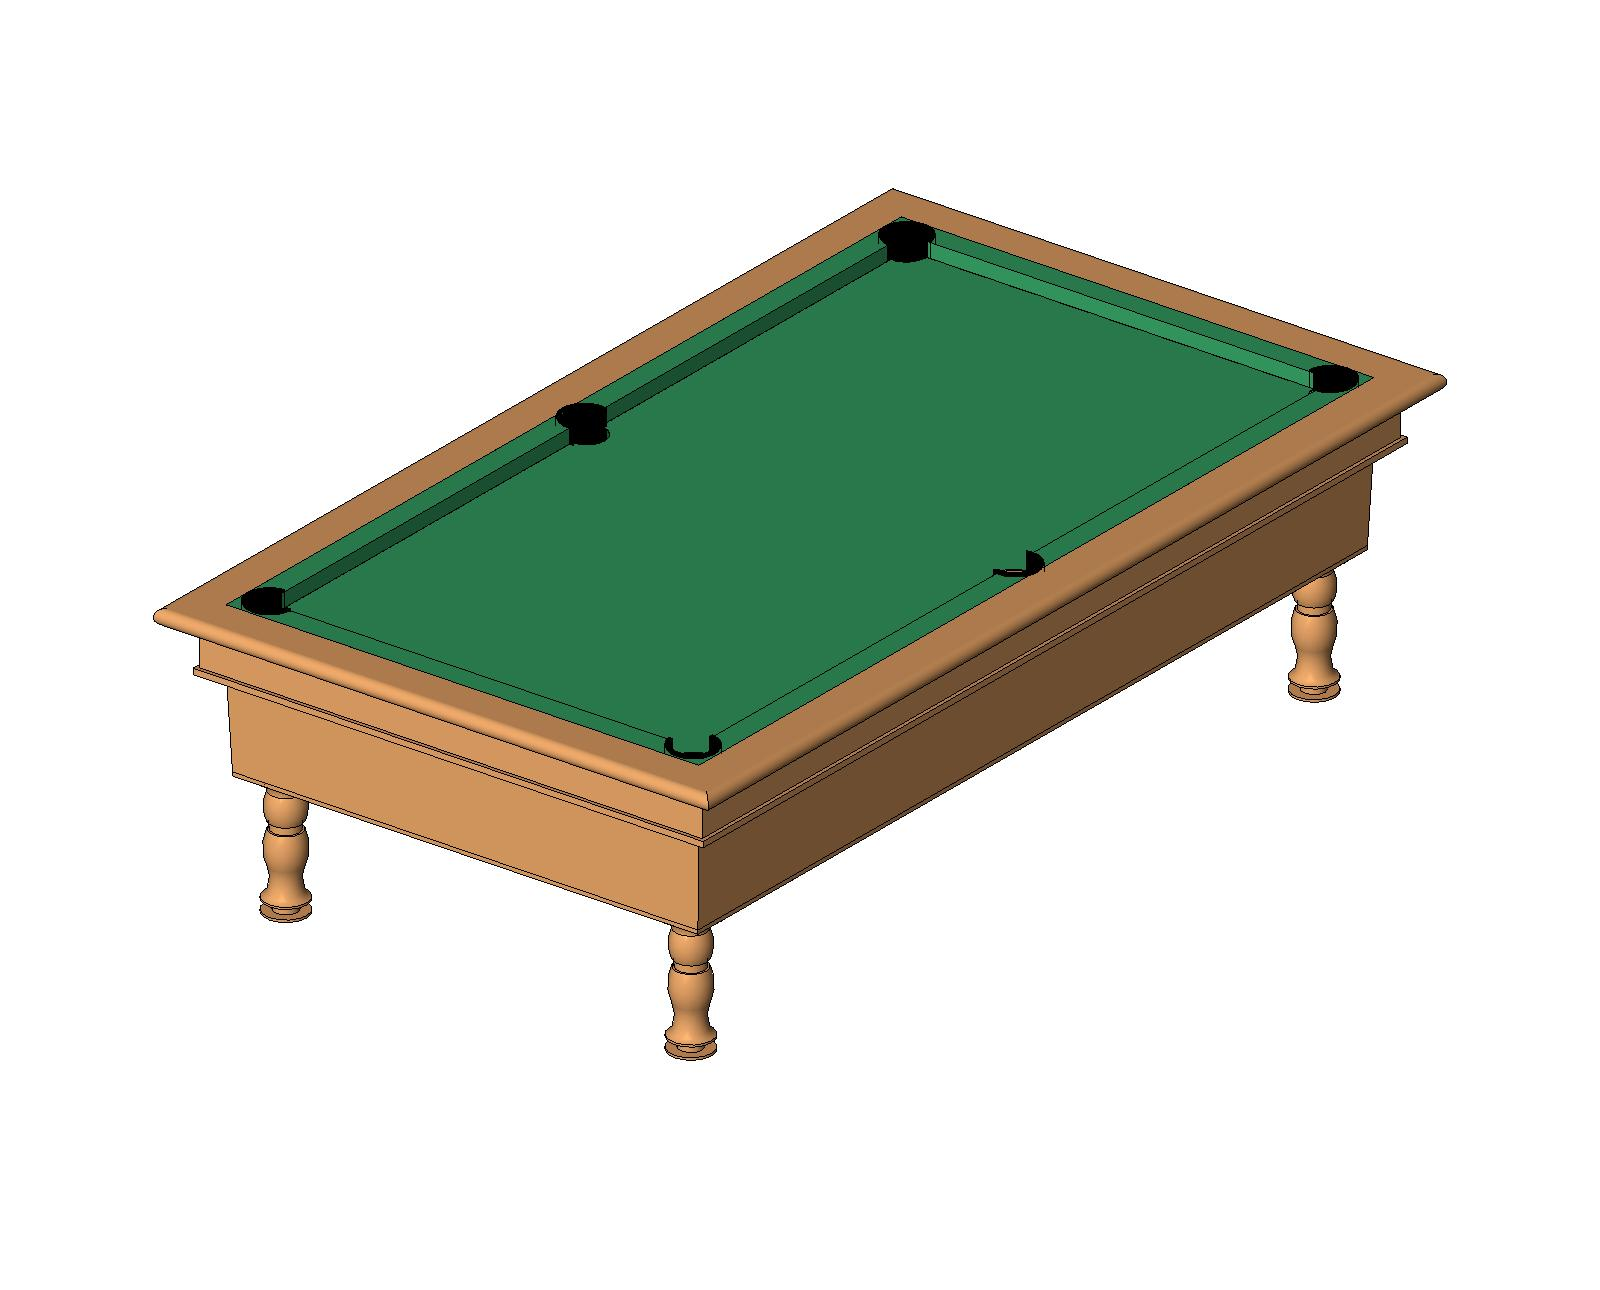 Bim objects families - Best billiard table manufacturers ...